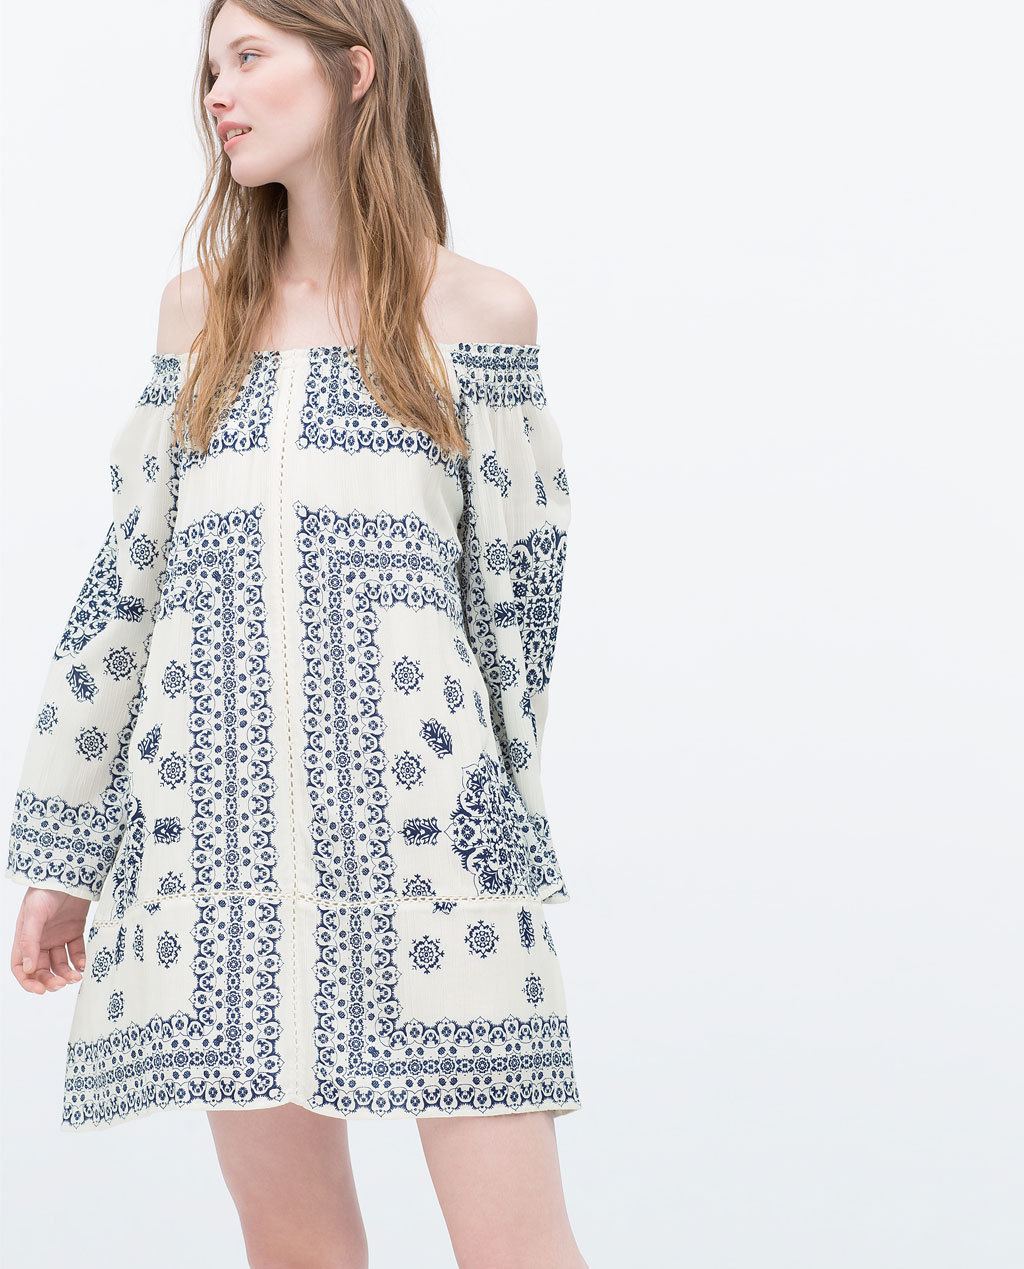 Printed Dress - style: shift; length: mid thigh; neckline: off the shoulder; secondary colour: ivory/cream; predominant colour: navy; occasions: casual; fit: soft a-line; sleeve length: long sleeve; sleeve style: standard; pattern type: fabric; pattern size: standard; pattern: patterned/print; texture group: woven light midweight; season: s/s 2015; wardrobe: highlight